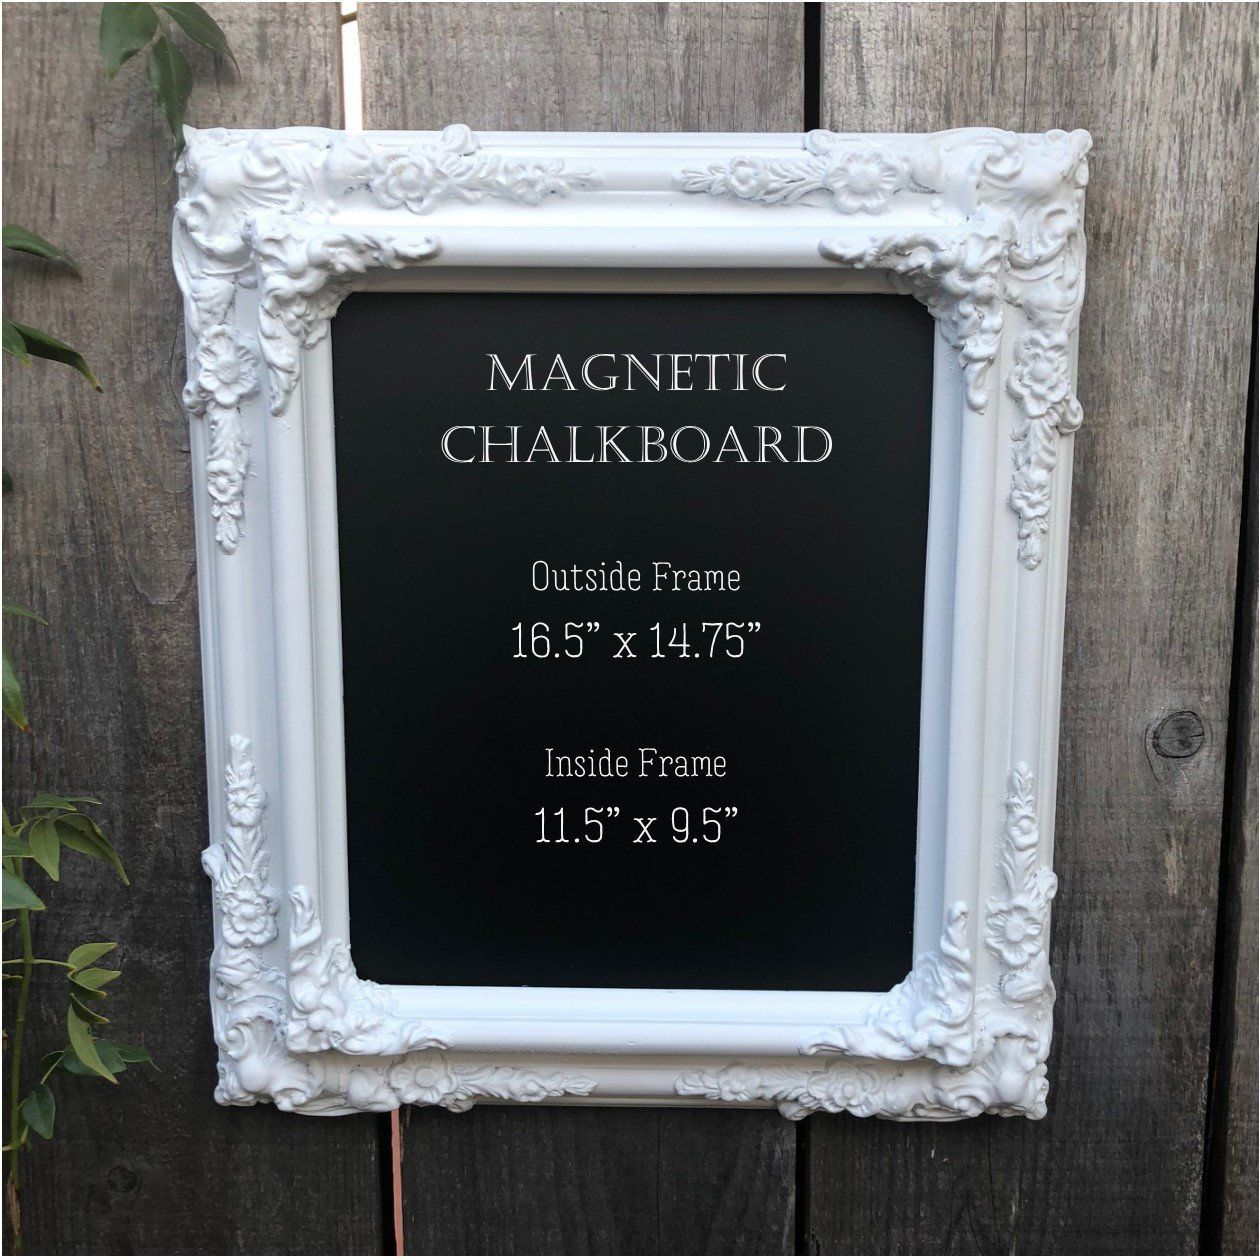 Vintage White Ornate Framed Magnetic Chalkboard Bar Sign Wedding Sign Magnet Board Glam Wedding Board Framed Magnetic Chalkboard Frame Magnetic Chalkboard